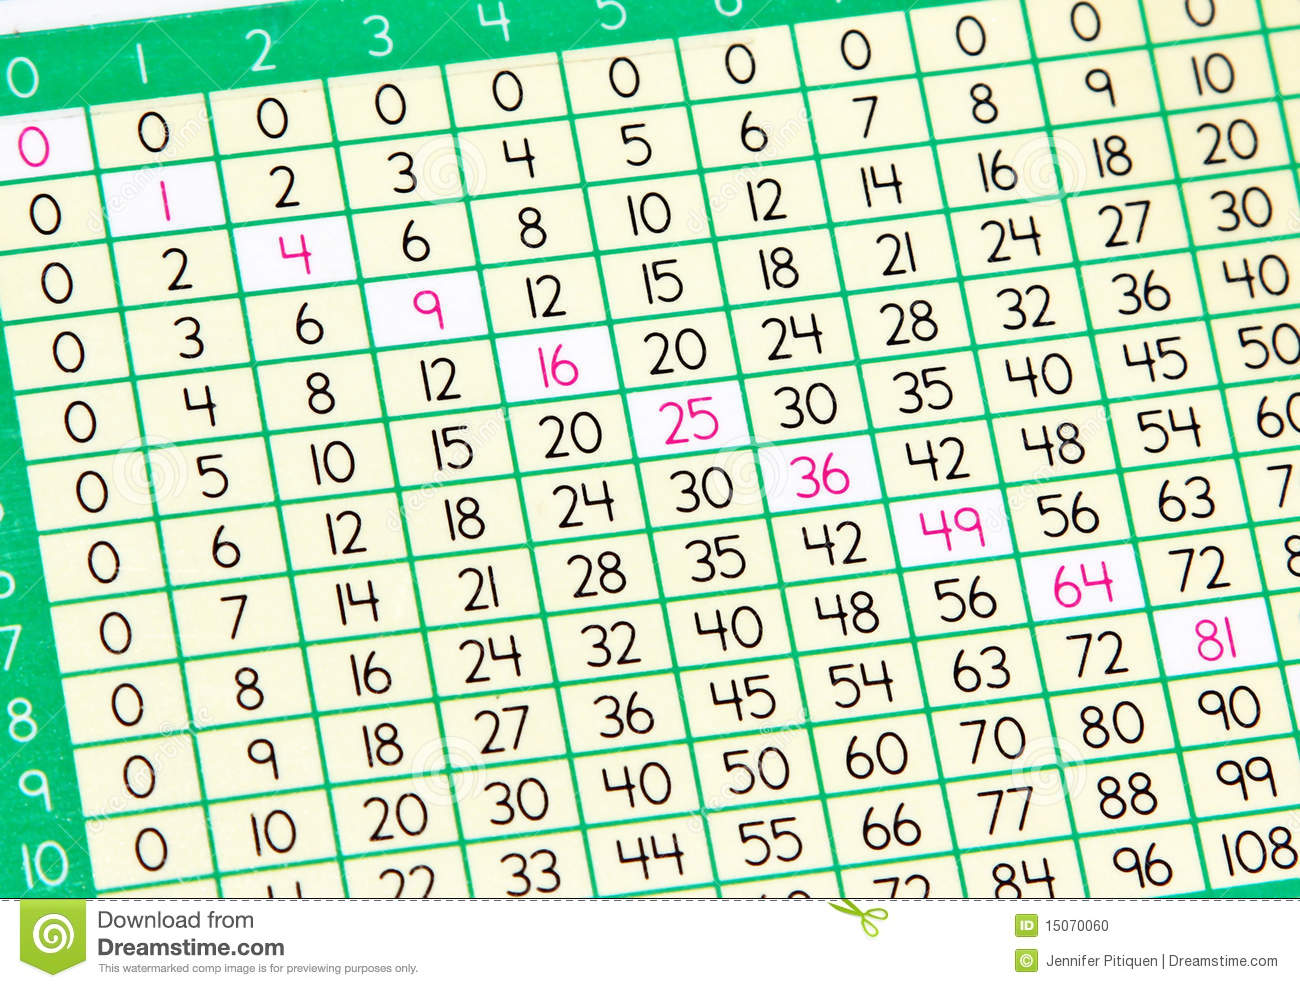 worksheet Multiplication Chart 0-12 multiplication chart 0 through 12 stock image 12991411 table photo